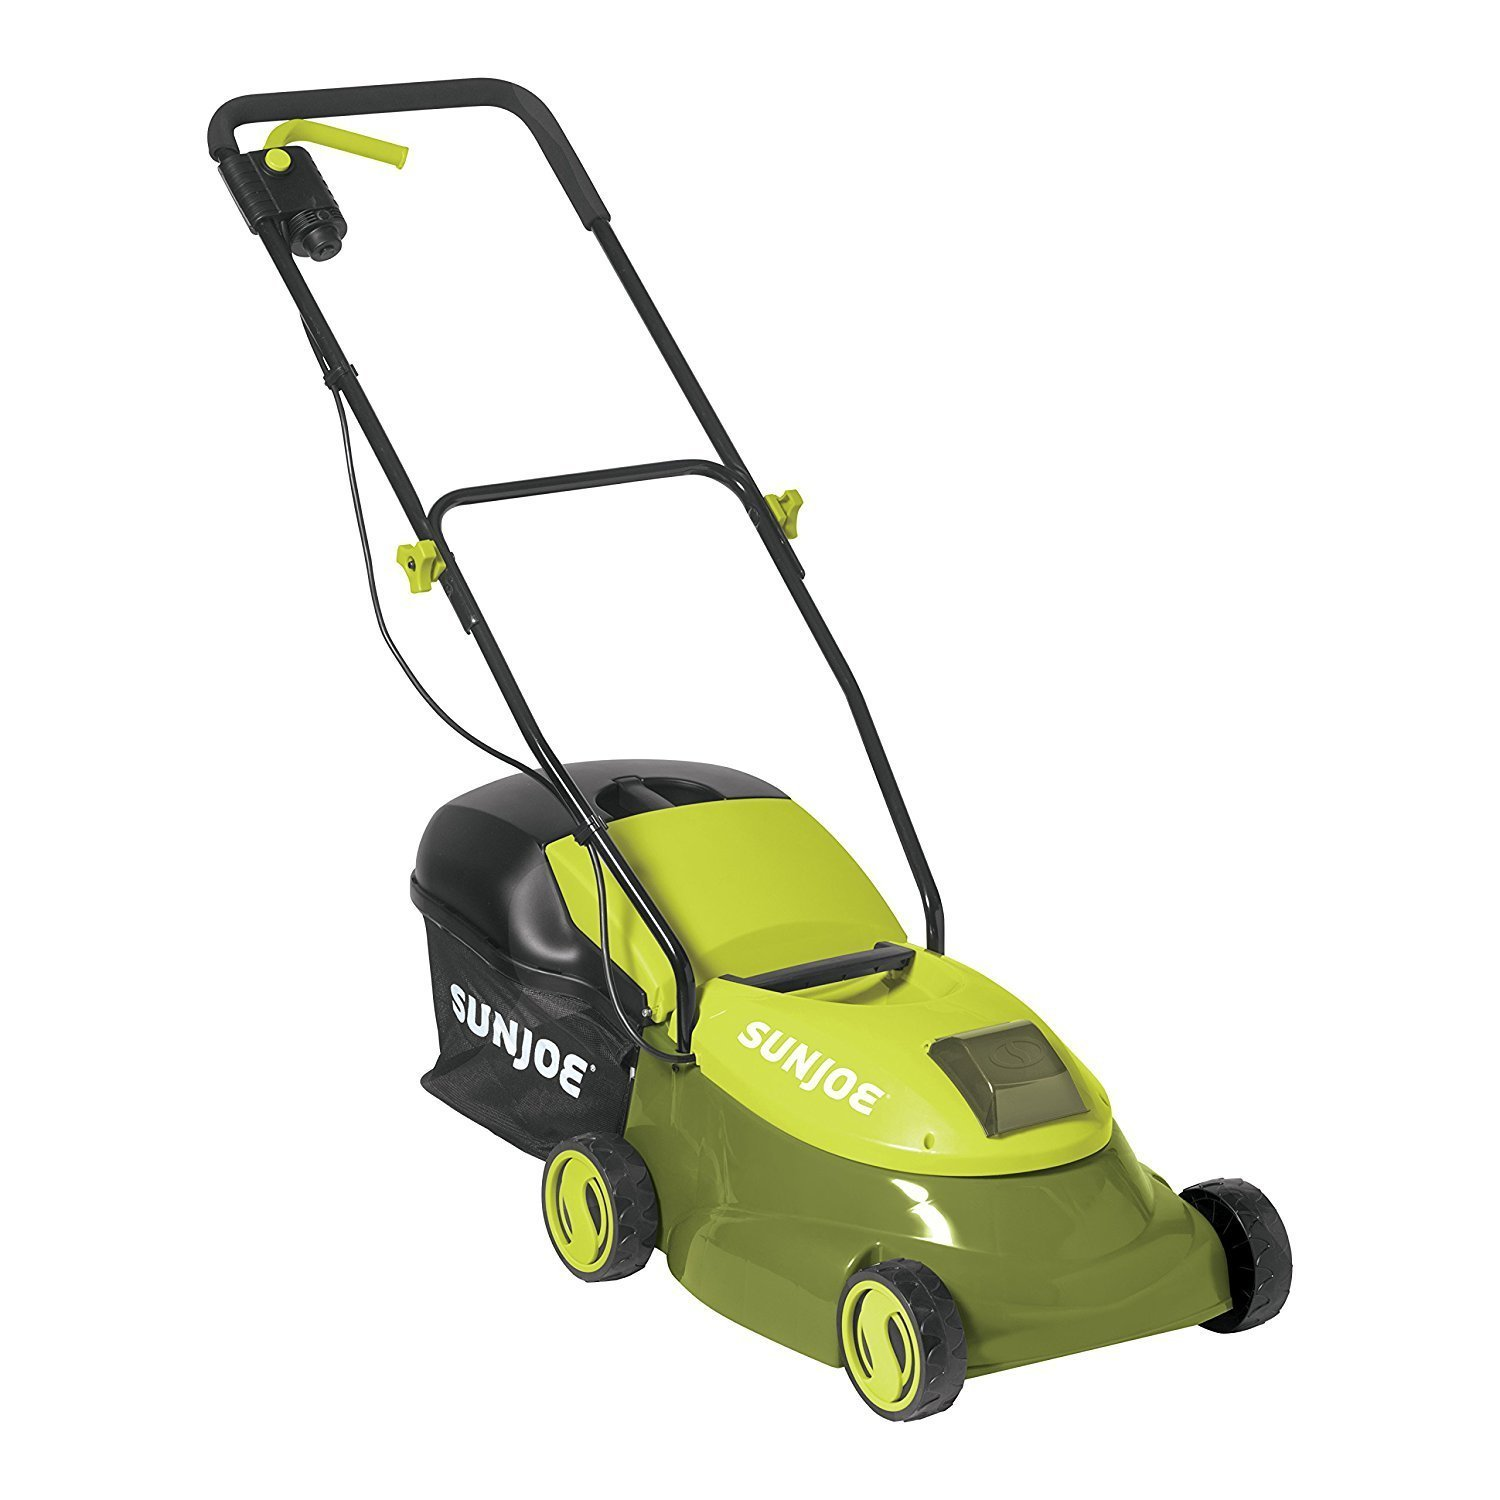 small electric lawn mower home furniture design. Black Bedroom Furniture Sets. Home Design Ideas